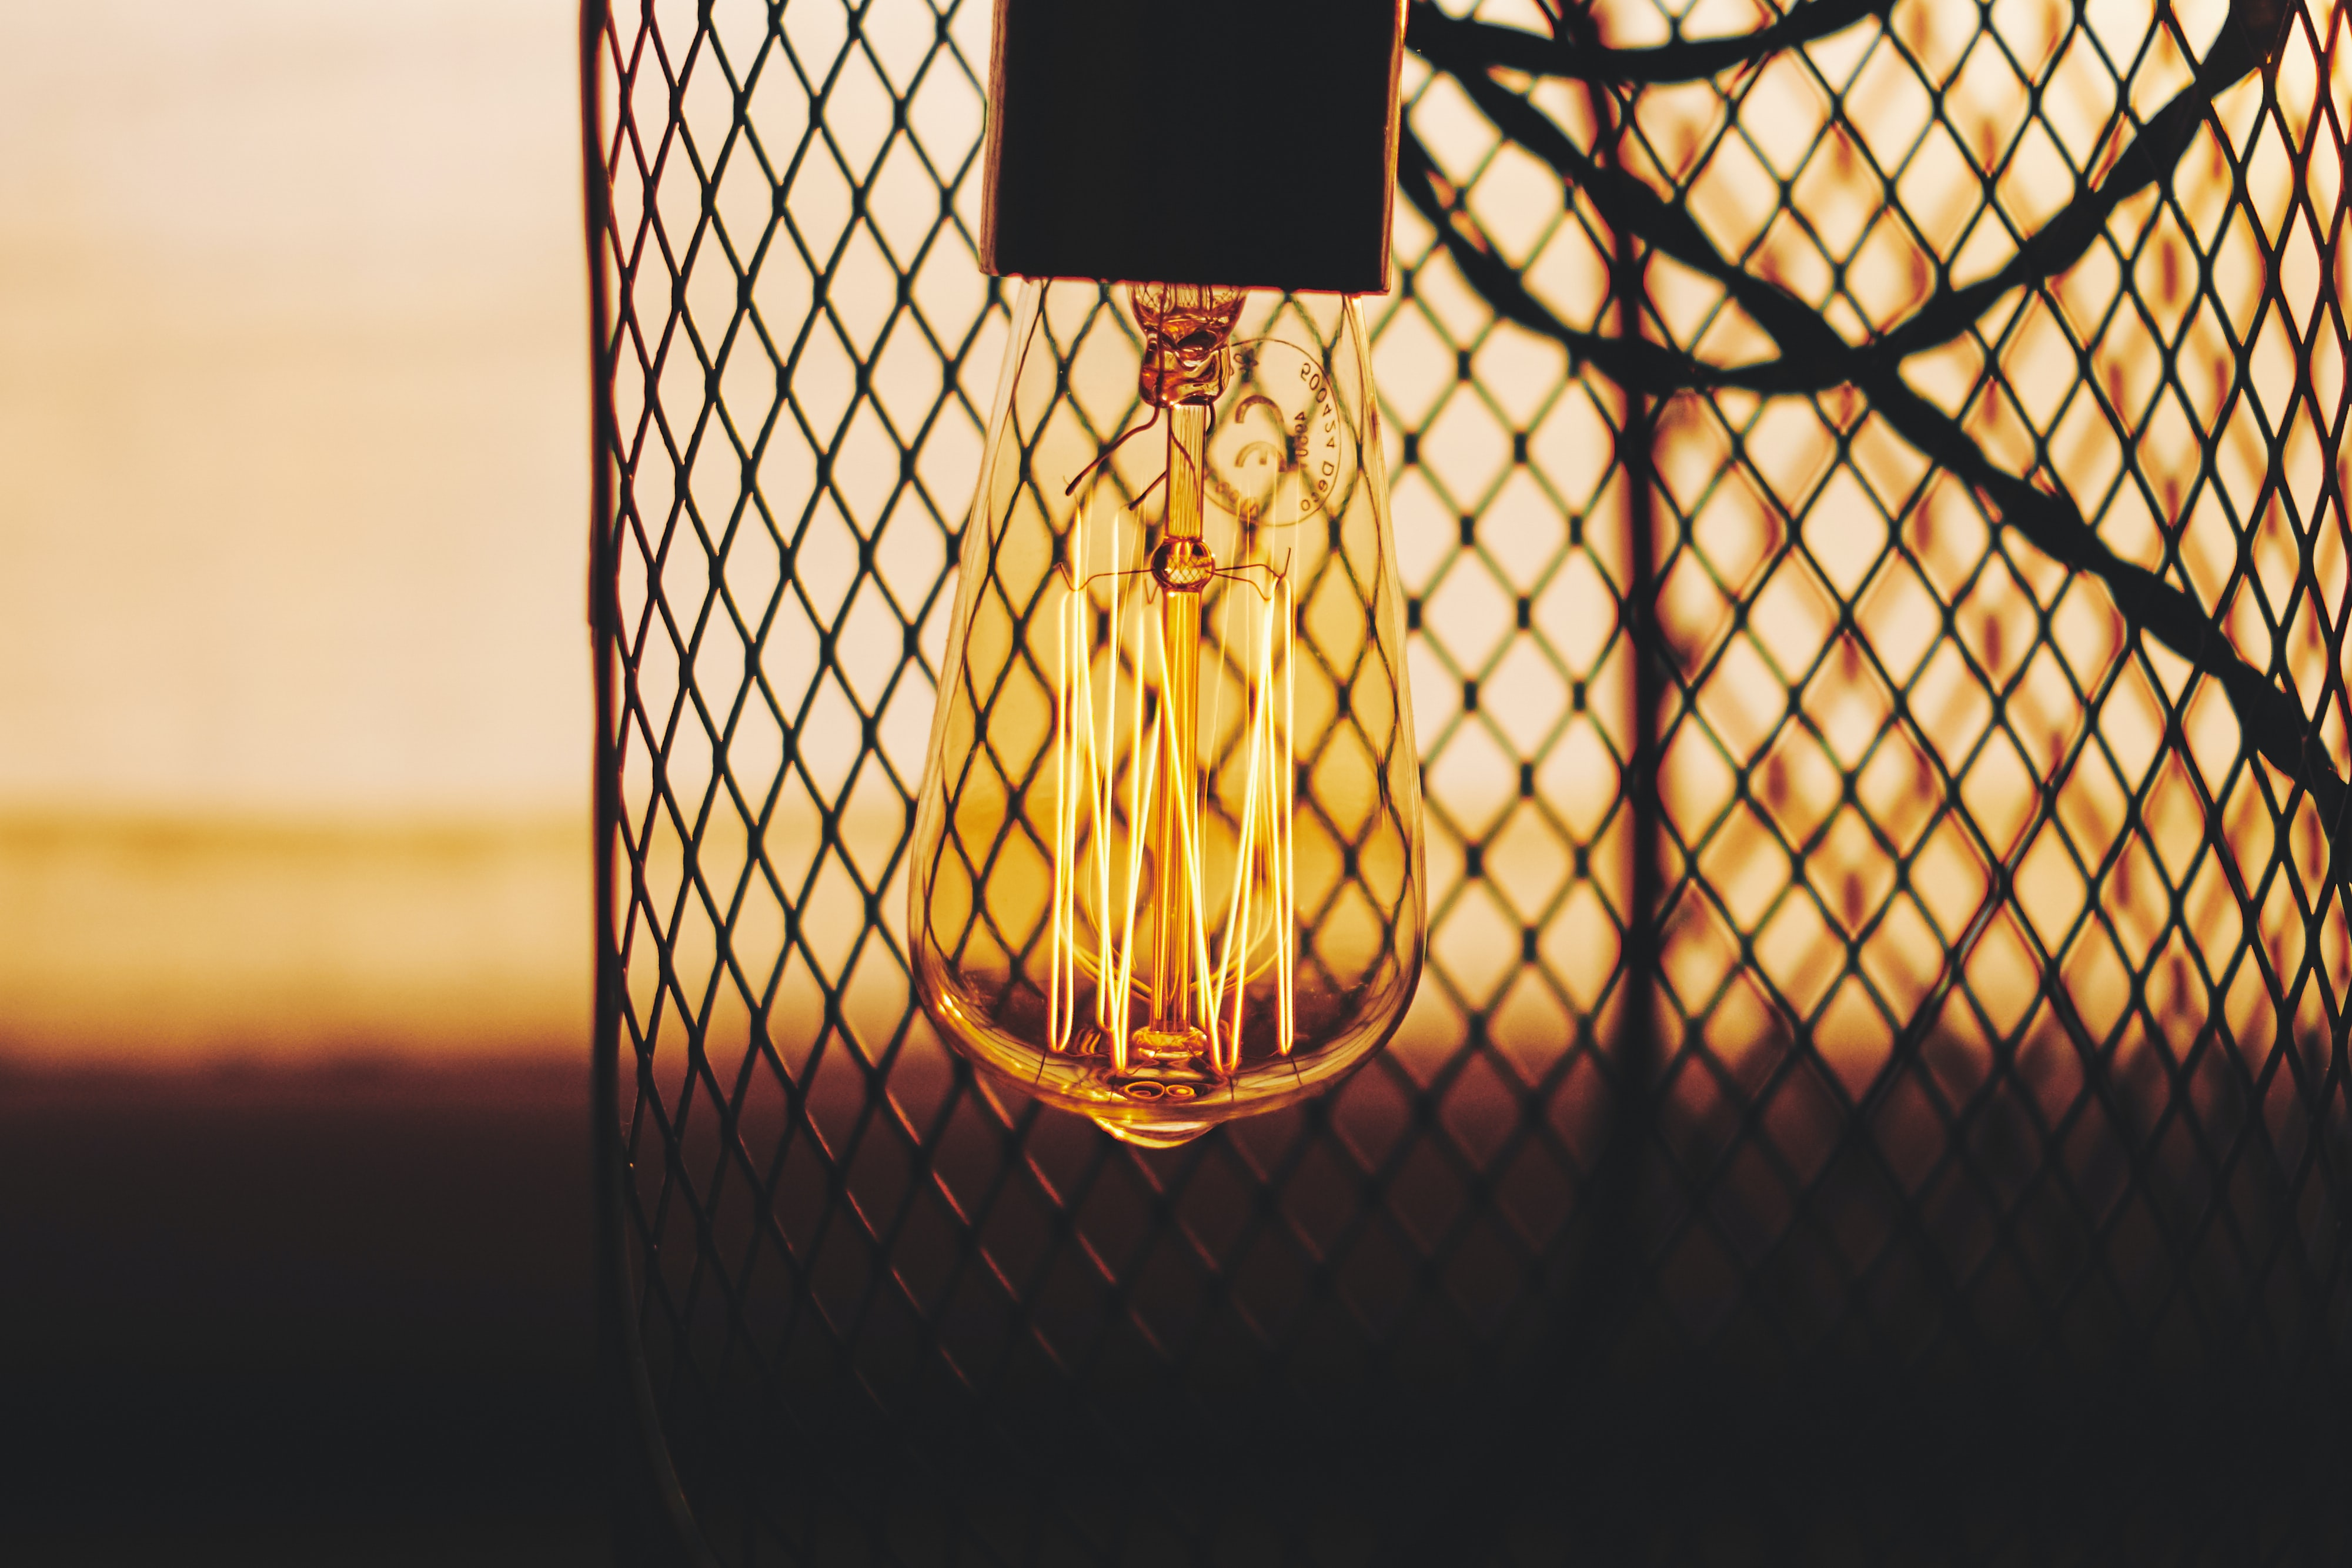 Close-up of an incandescent light bulb outdoors during sunset